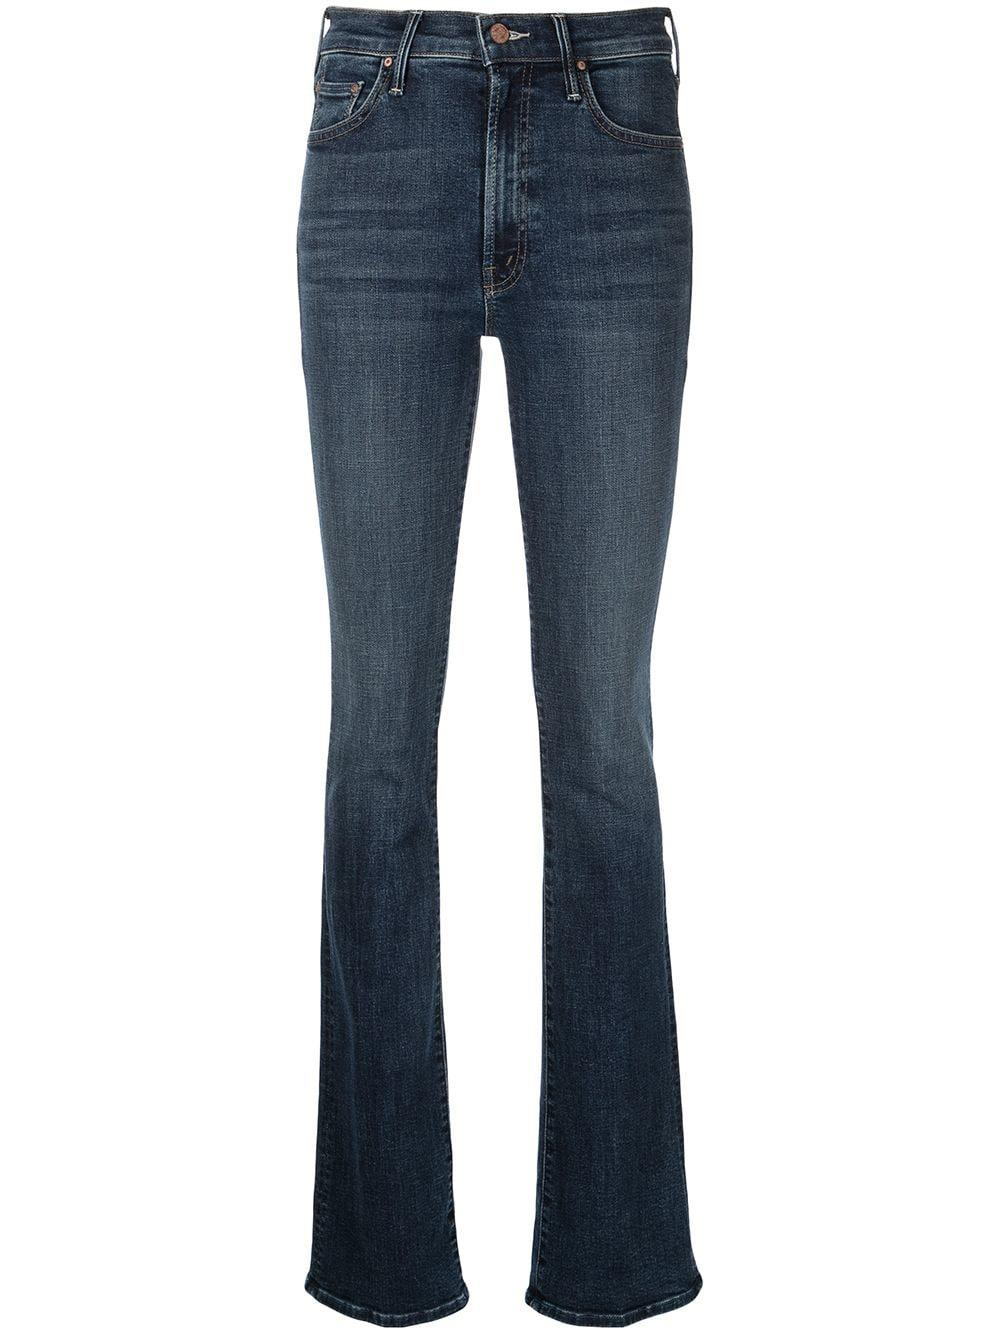 The Insider Boot Cut Jeans Item # 1037-799